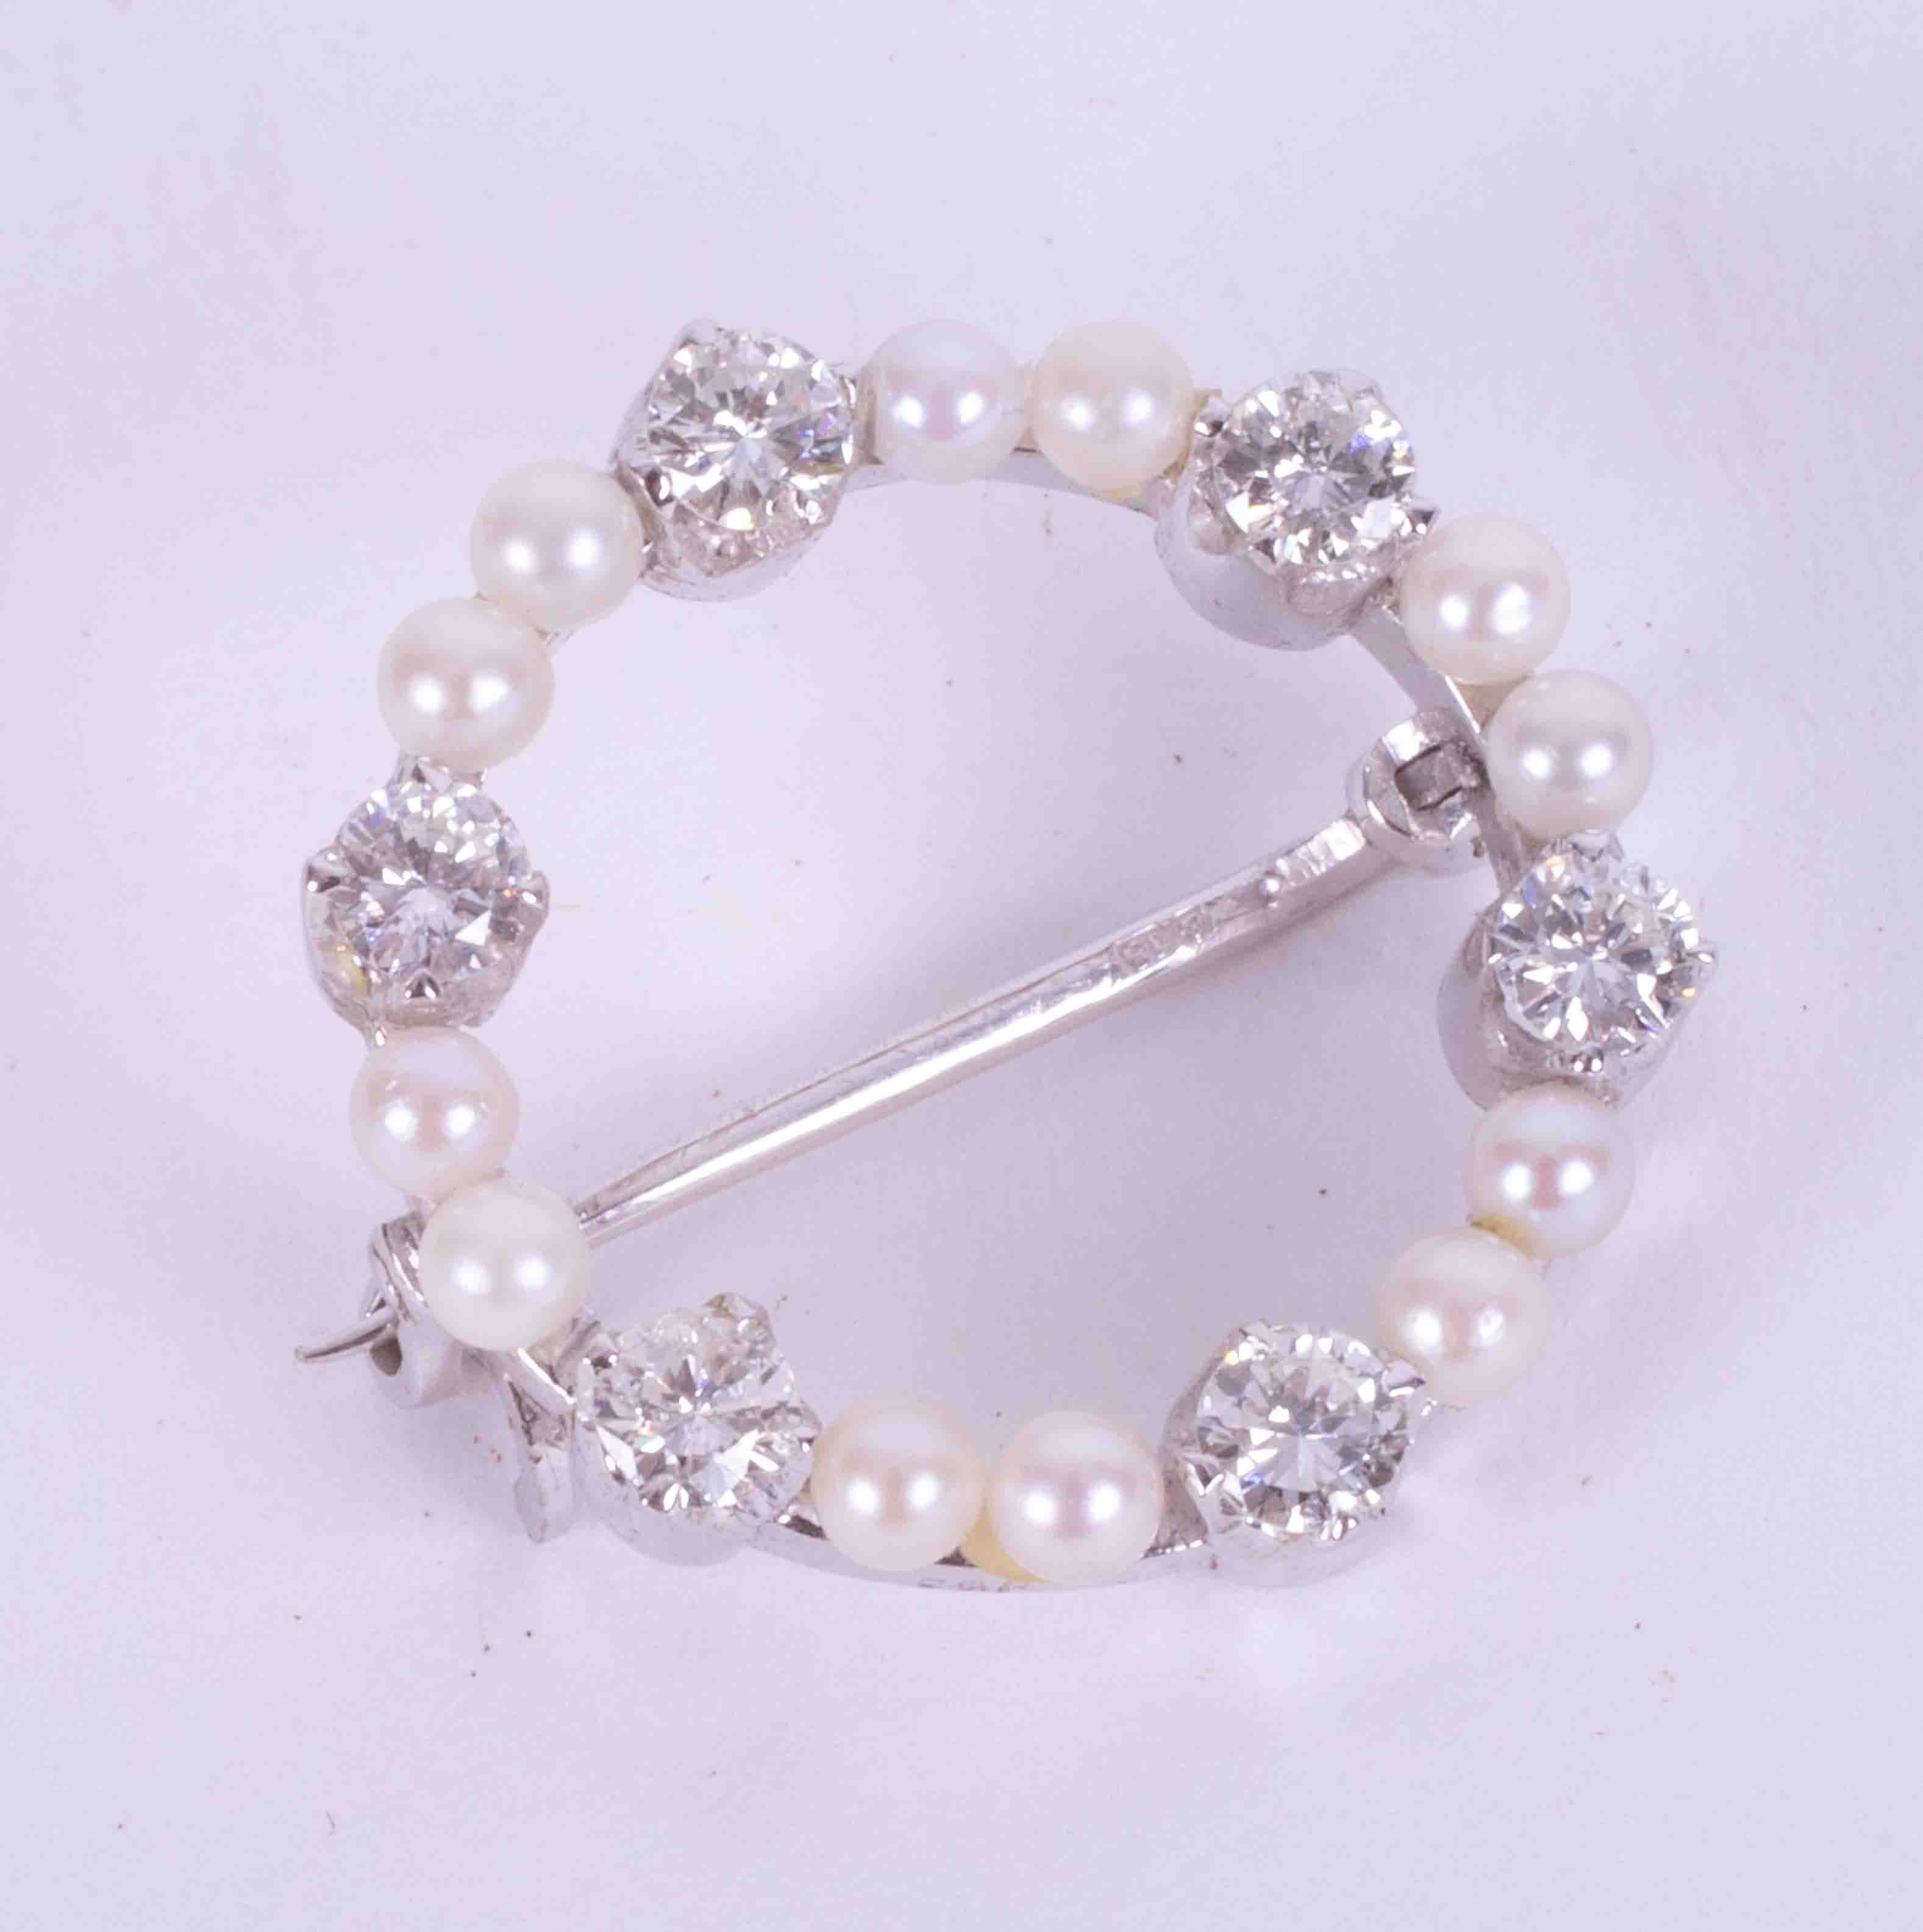 An 18ct white gold circular brooch set with twelve little cultured pearls & six round brilliant